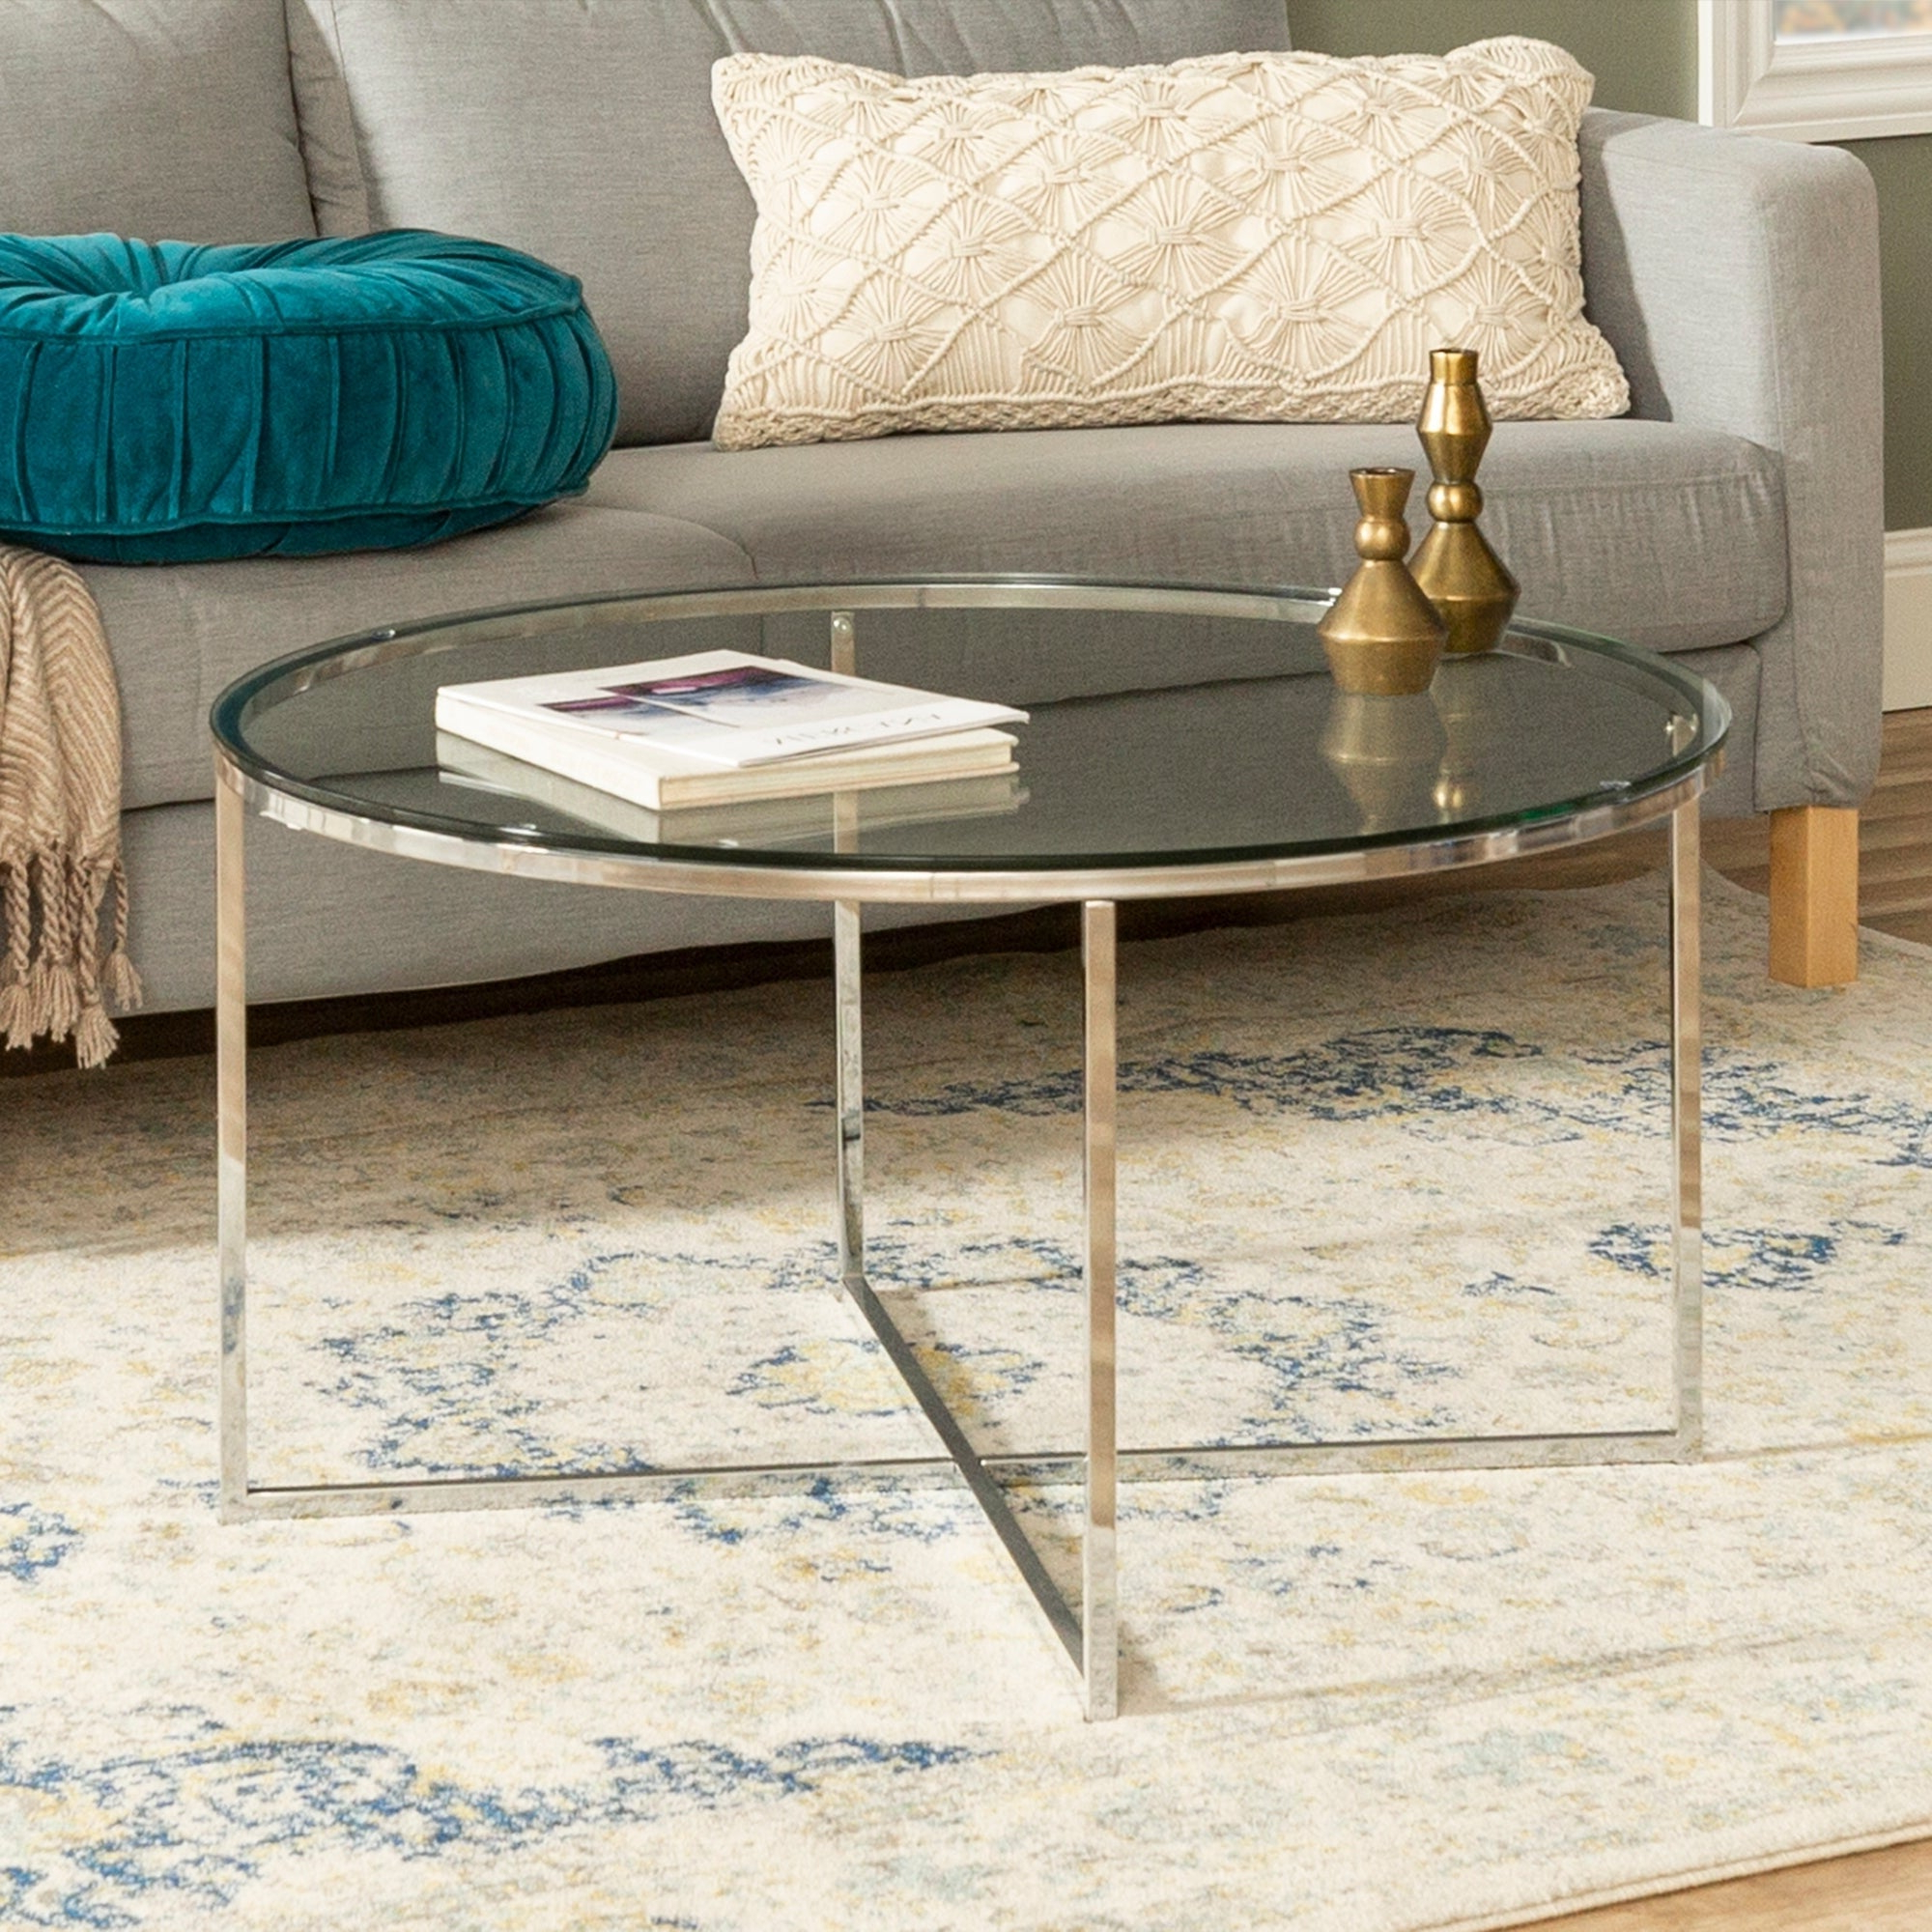 Newest Silver Orchid Ipsen Round Coffee Tables With X Base Within Silver Orchid Ipsen 36 Inch Round Coffee Table With X Base – 36 X 36 X 19h (View 2 of 20)